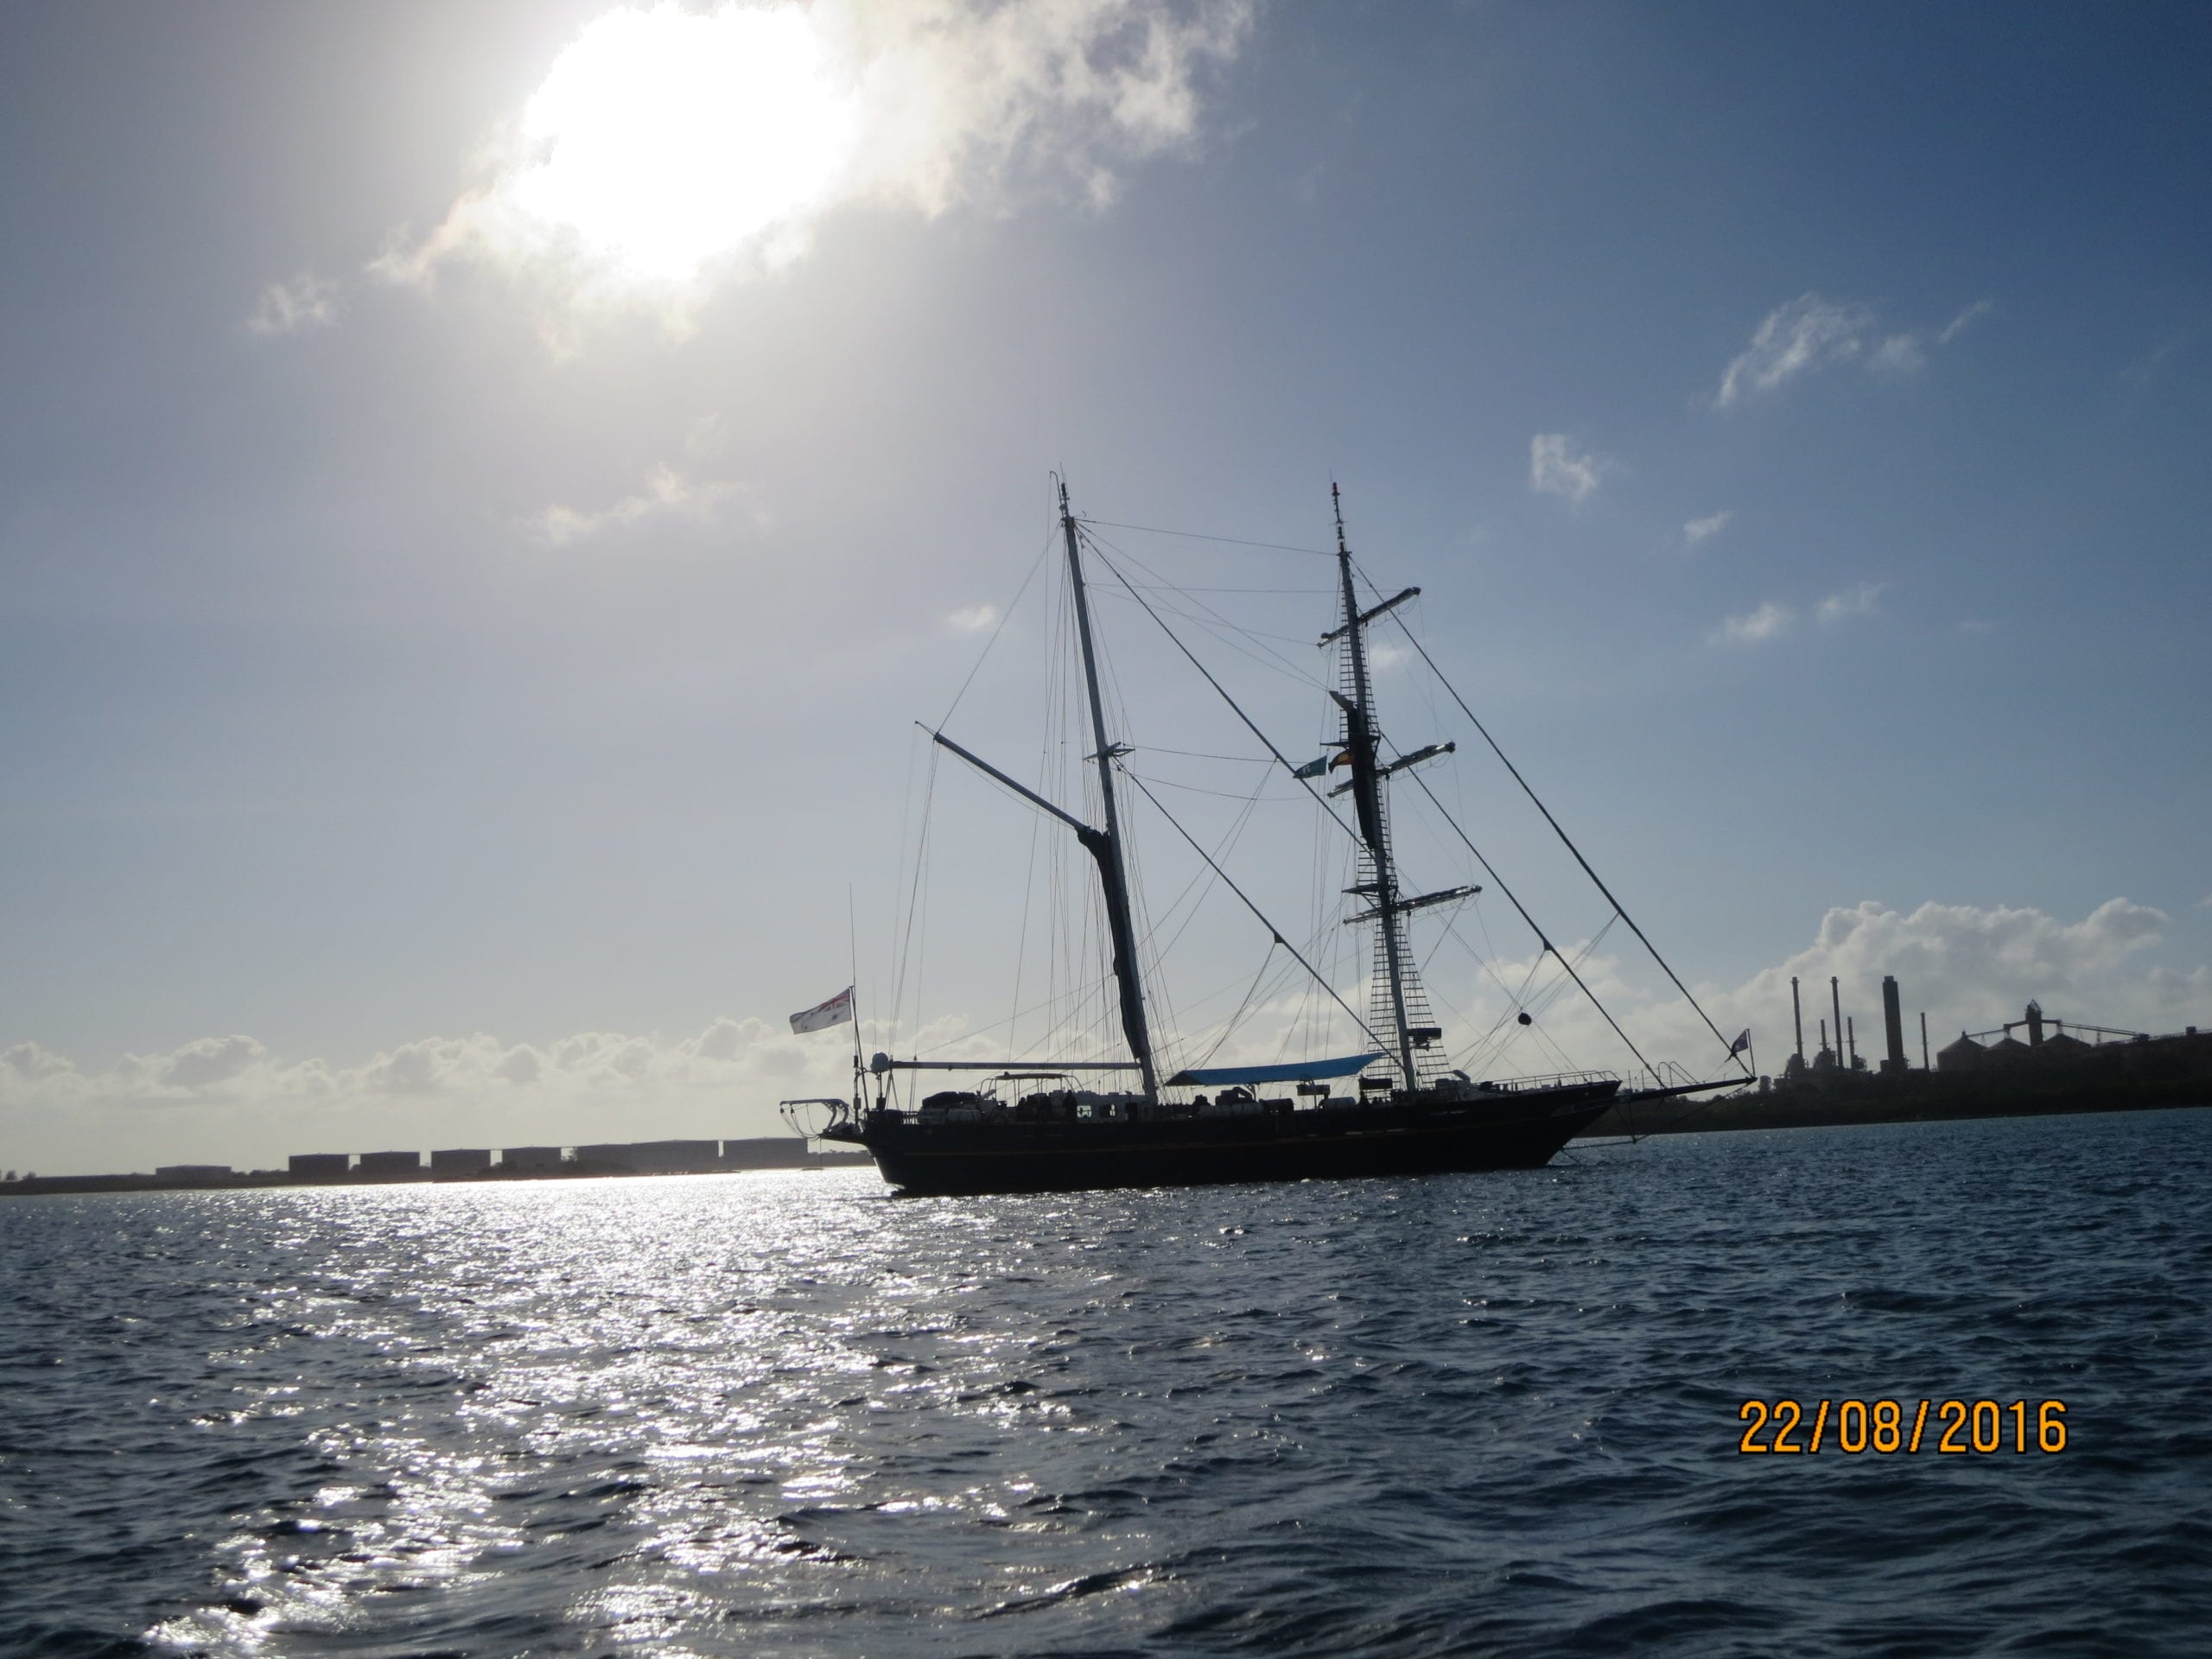 The young endeavour has two masts and is a lot bigger than an international cadet.